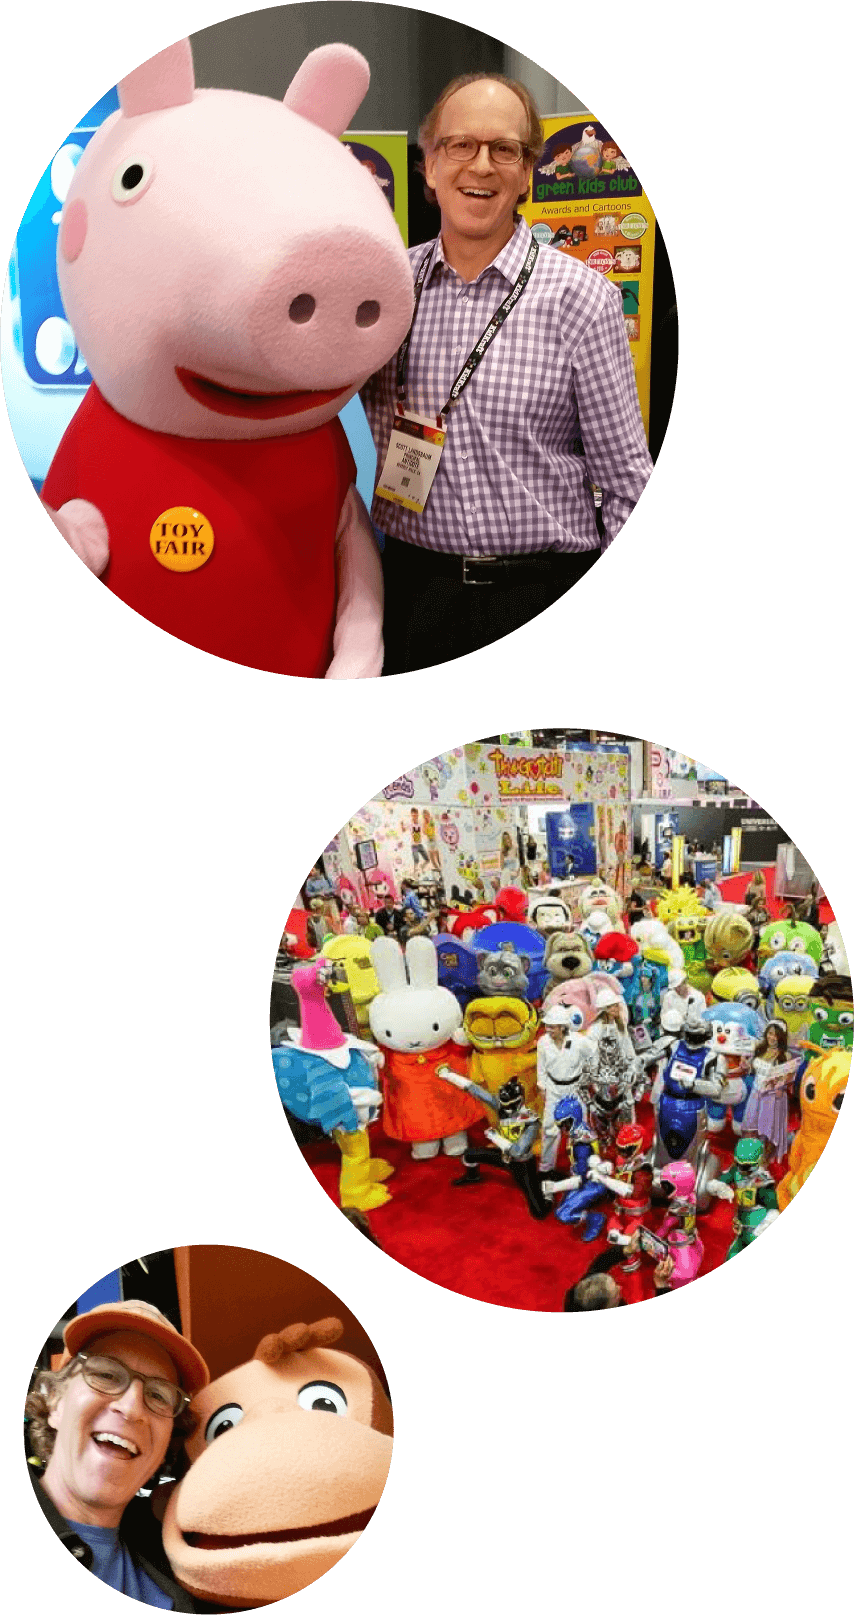 Scott at Toy Fair